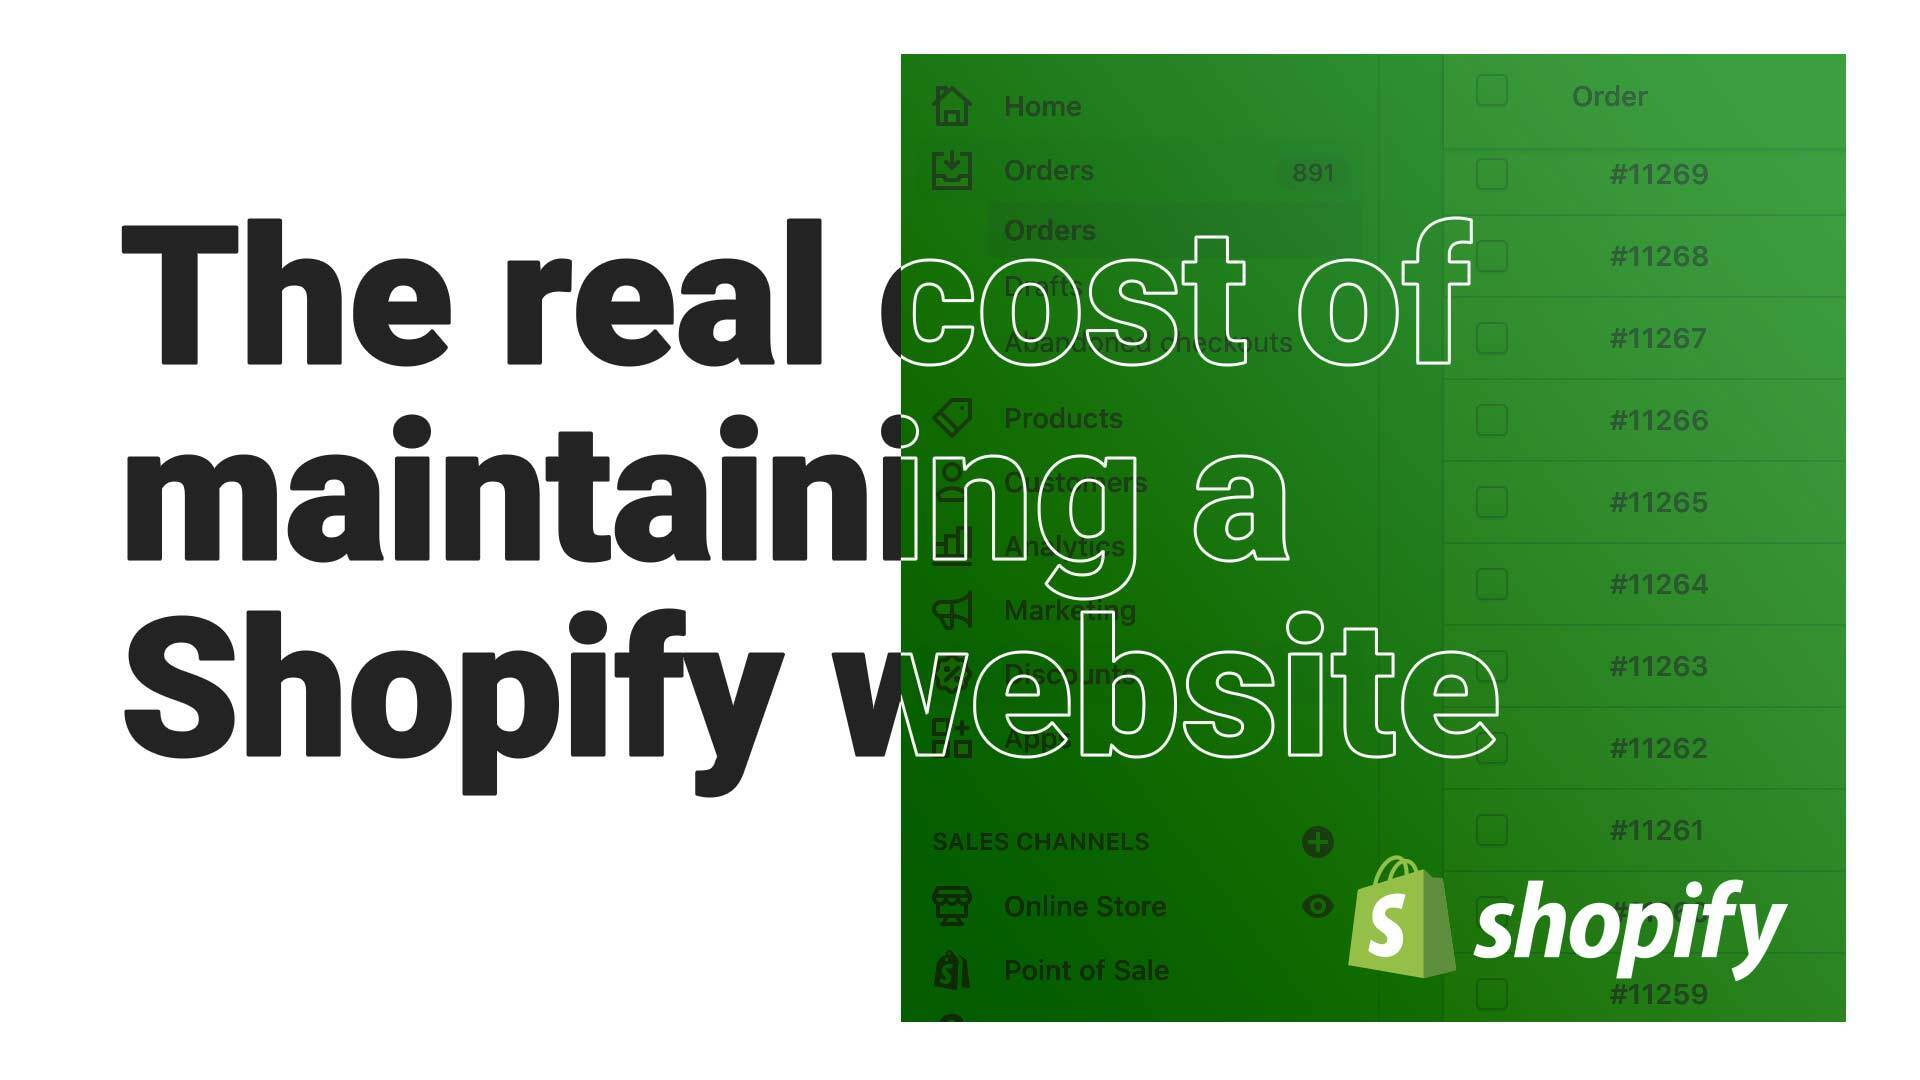 How Much Is Shopify: The real cost of maintaining an ecommerce website